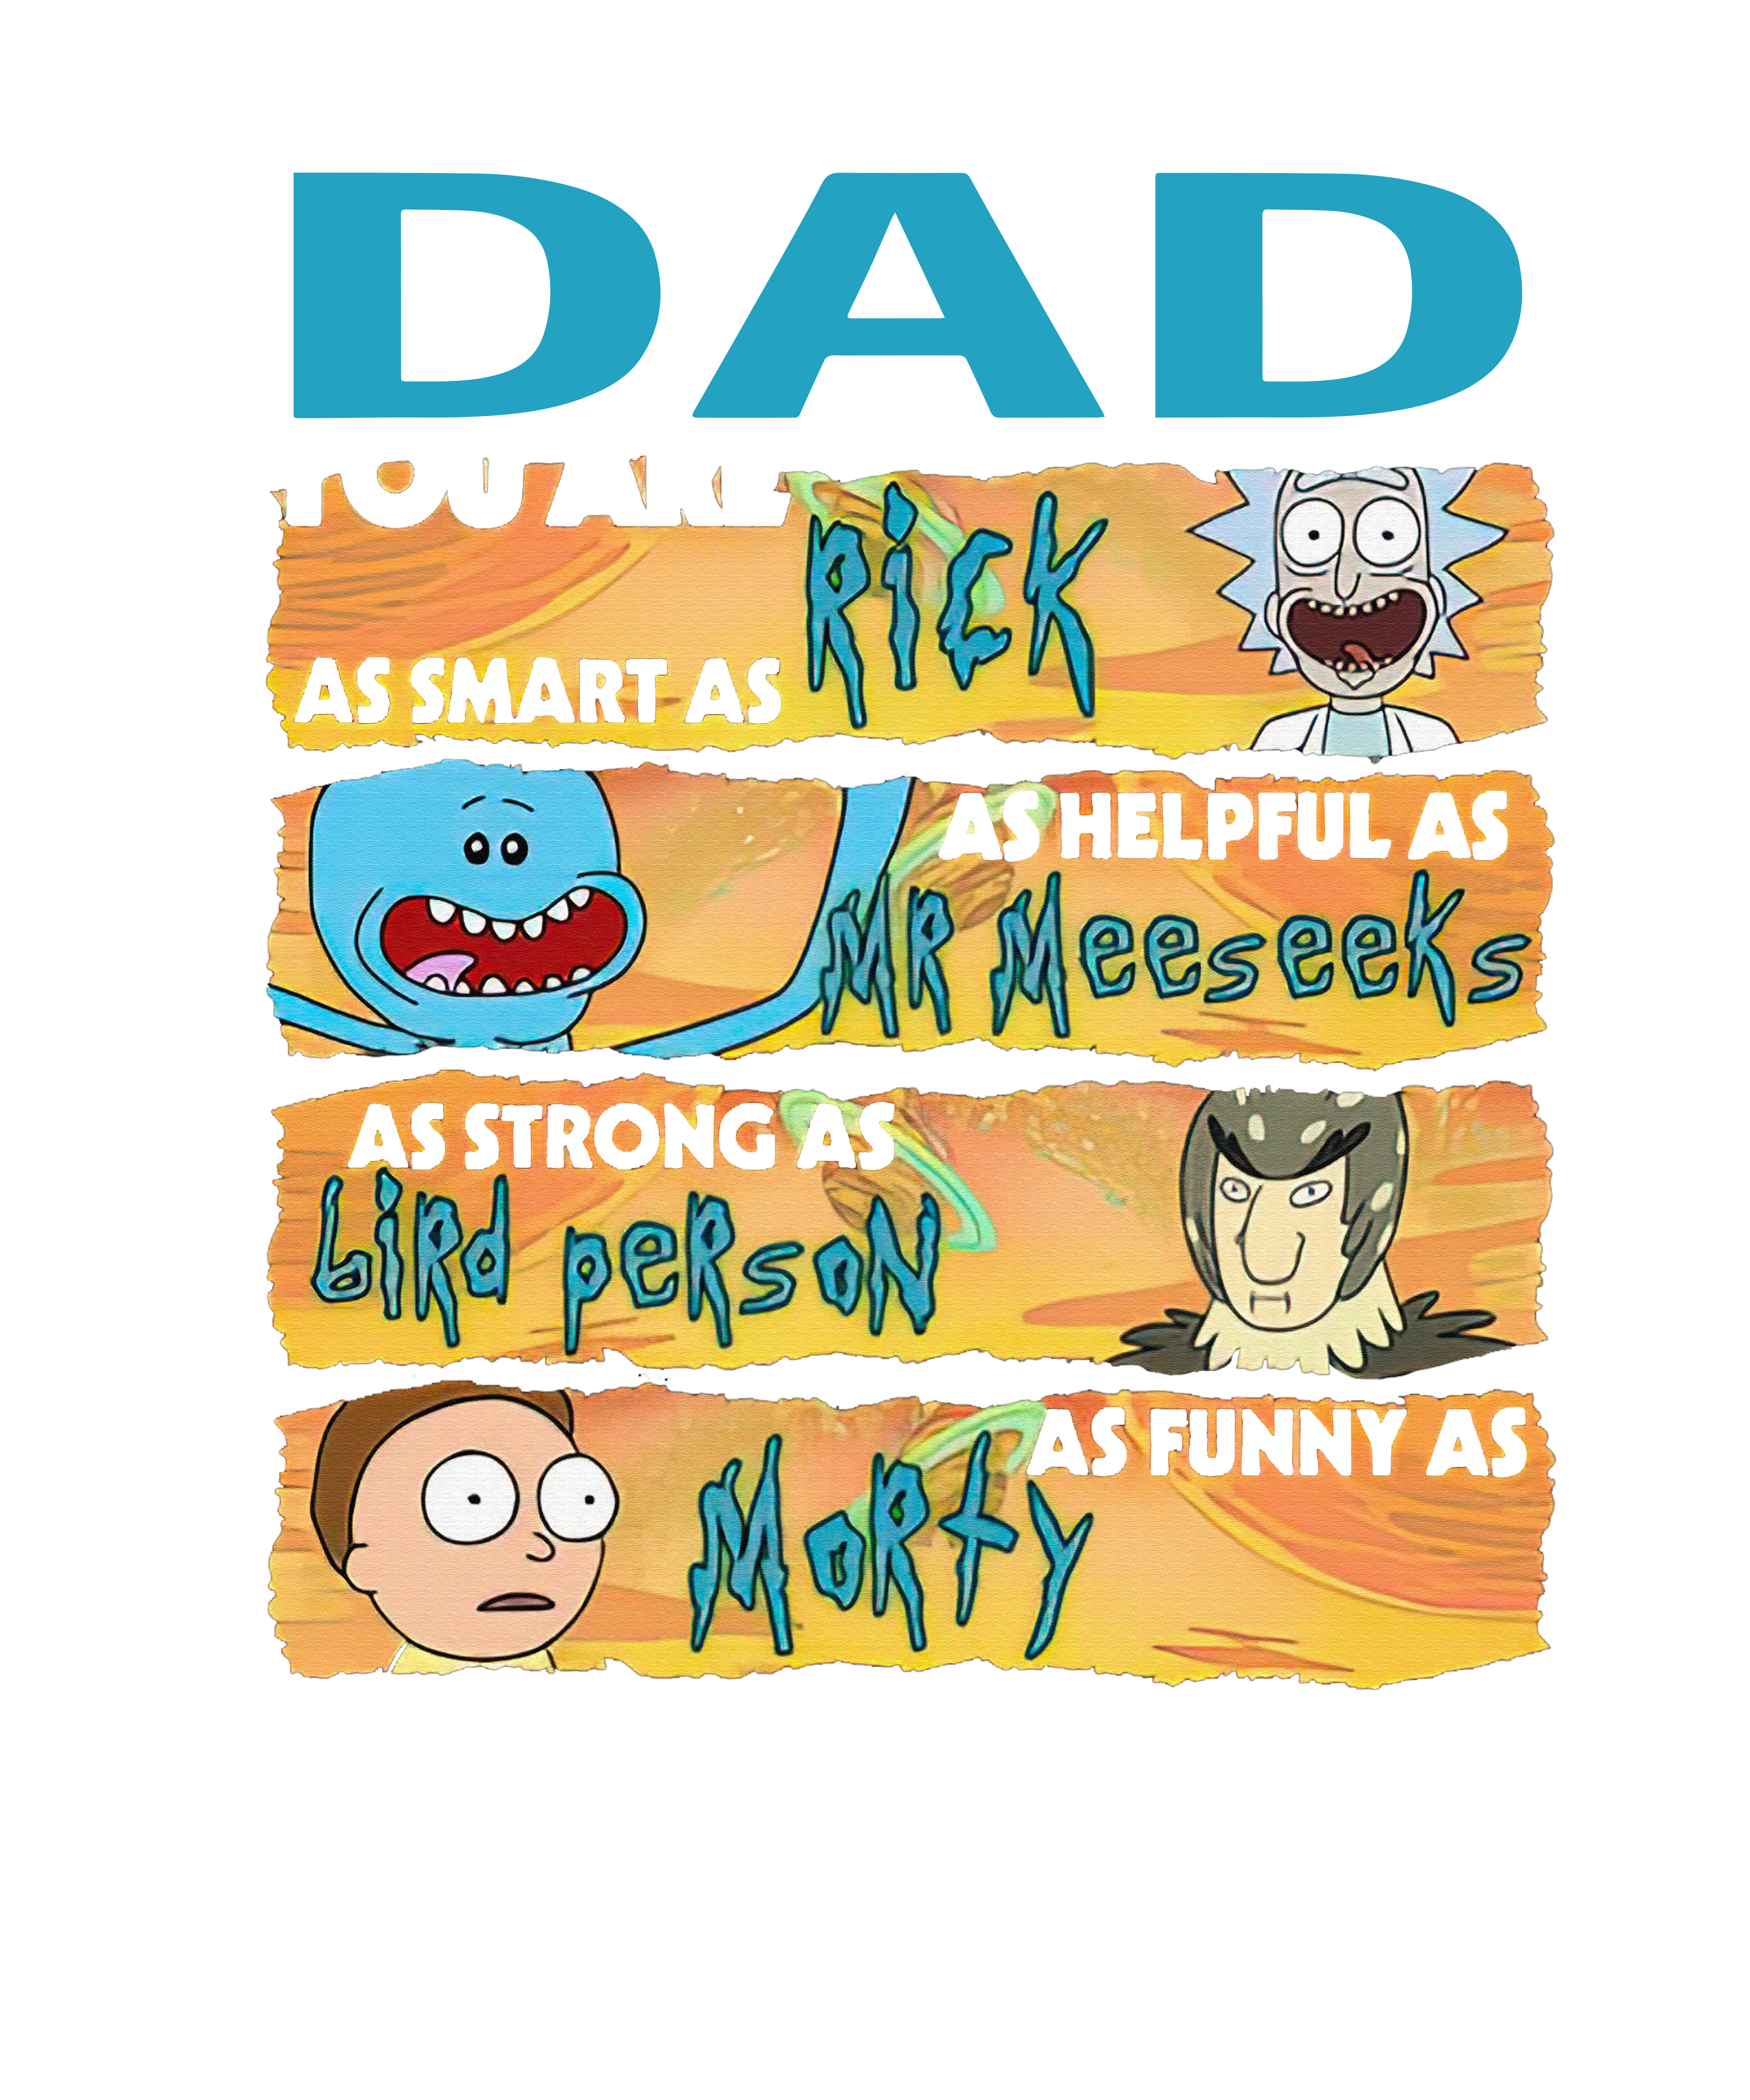 DAD RlCK AND M0RTY 1805L